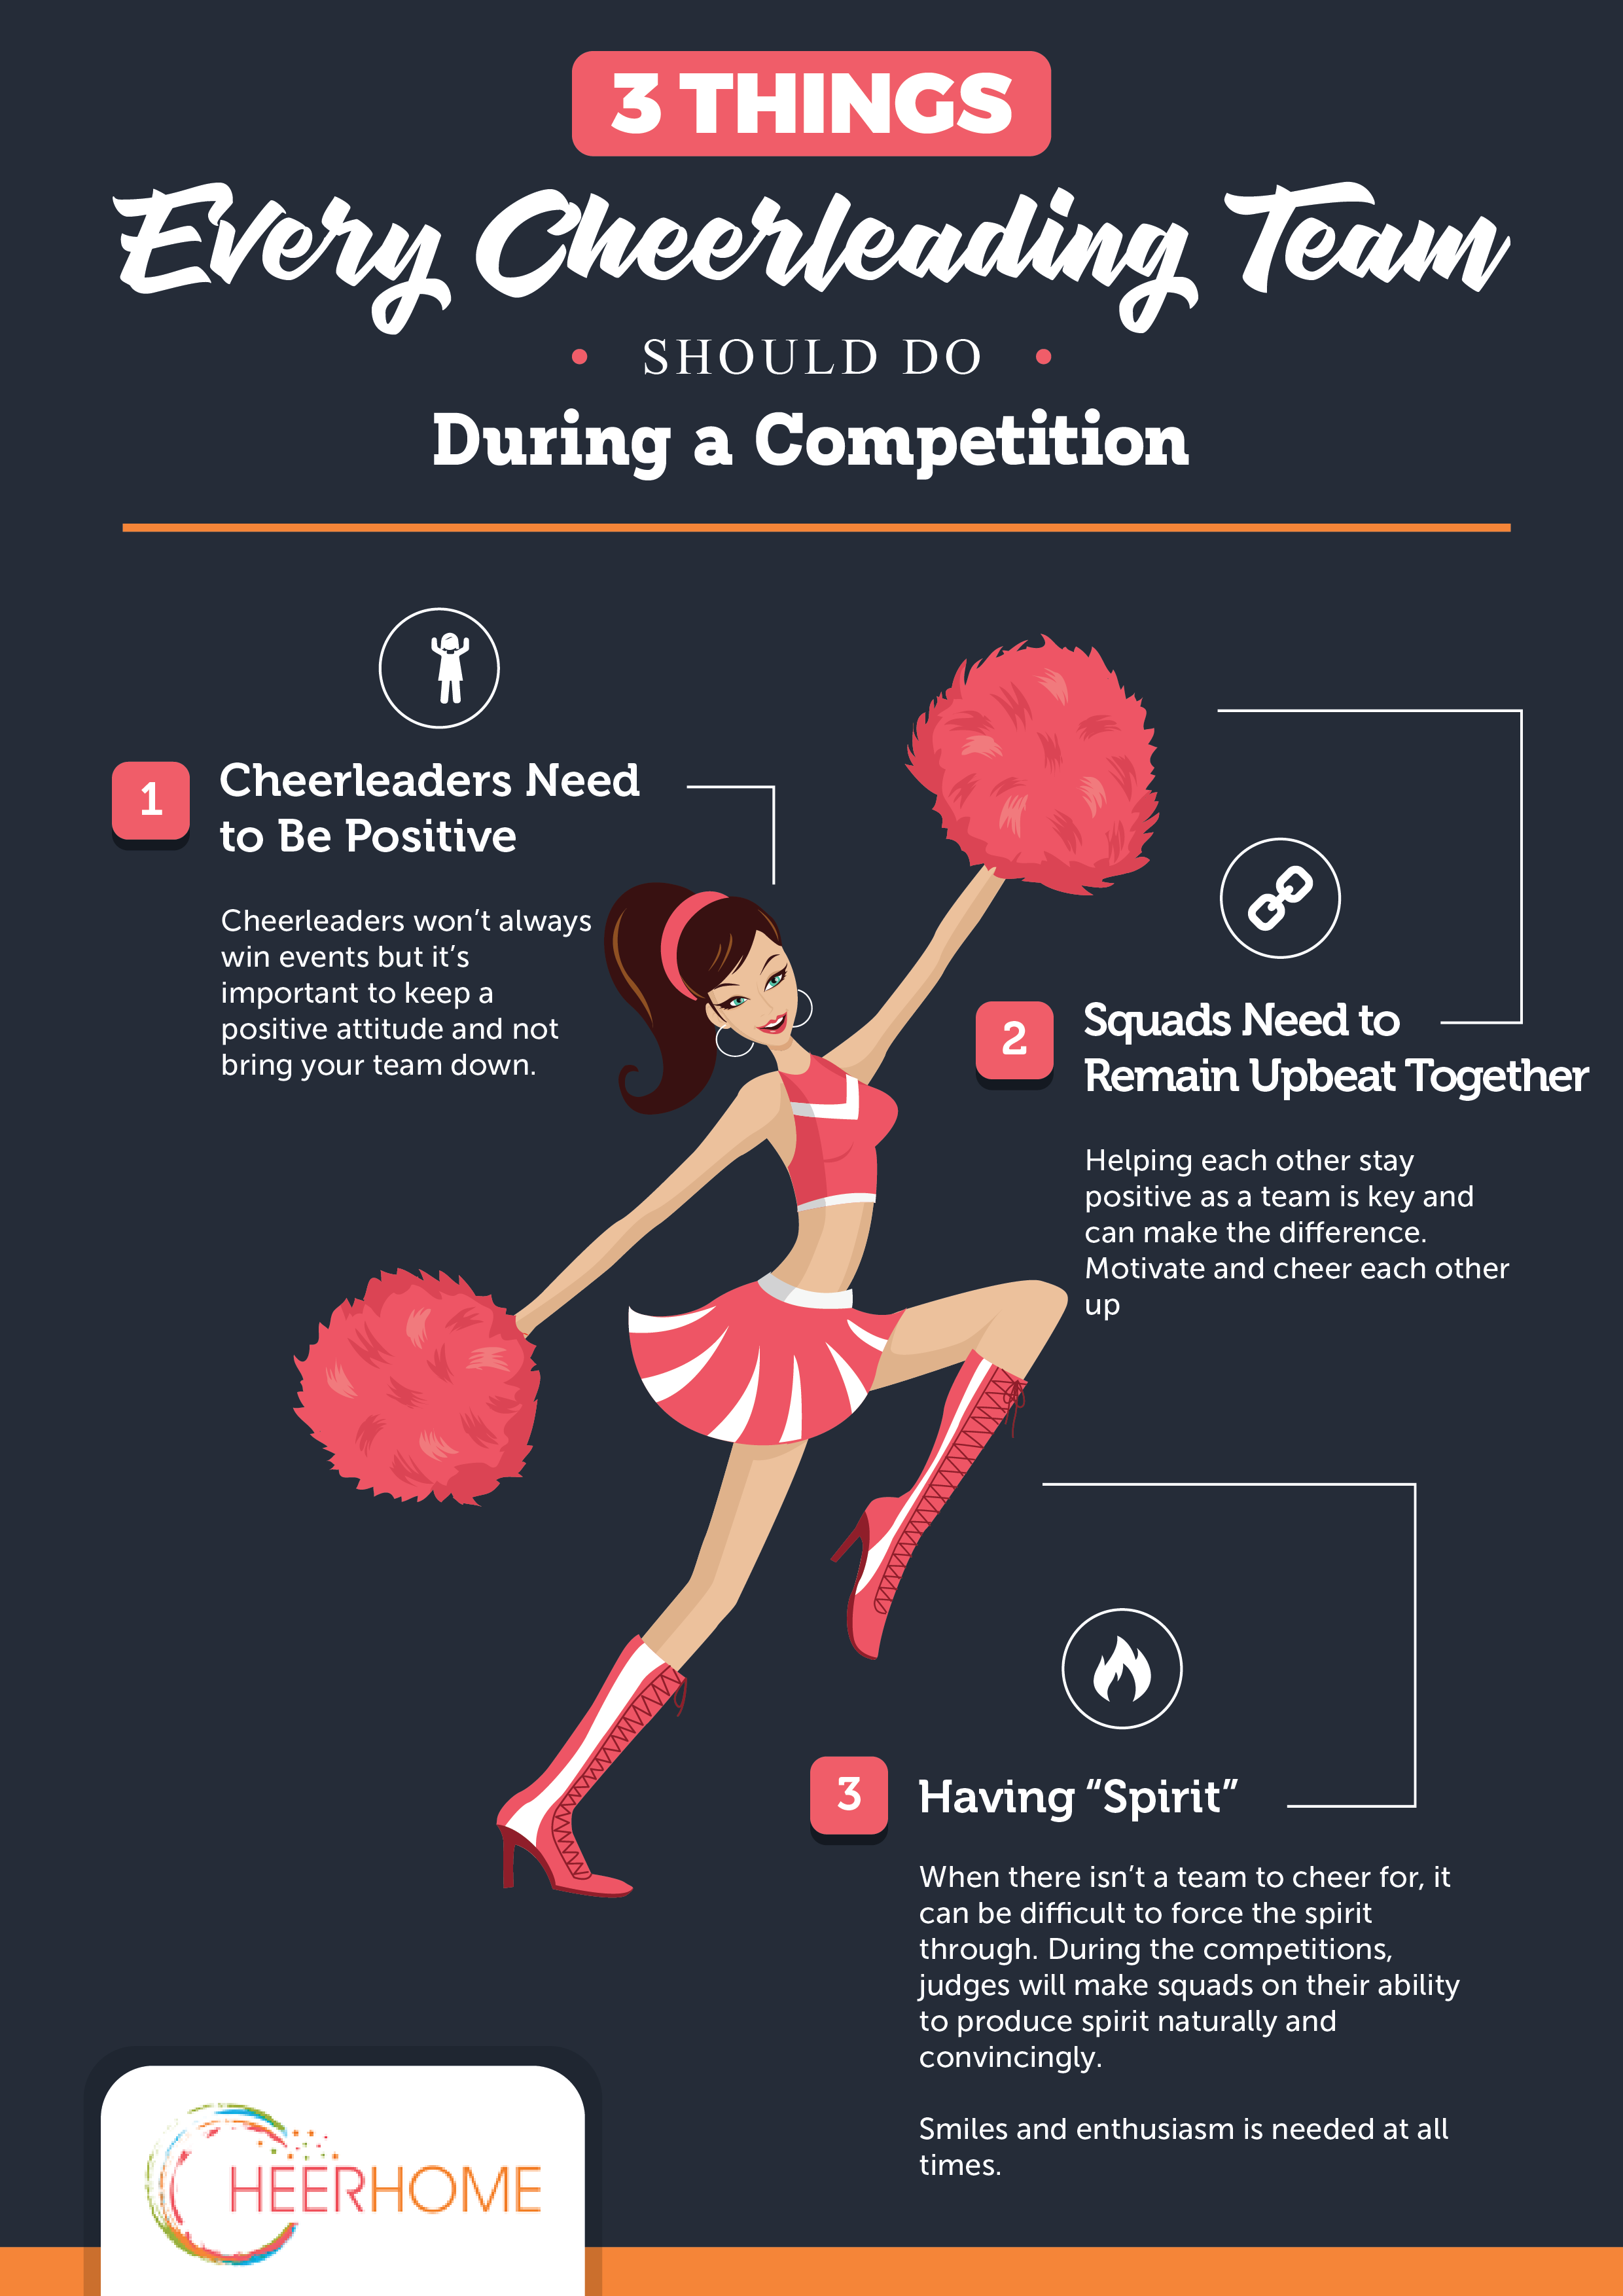 Top 3 Things Every Cheerleading Team Should Do During Competition